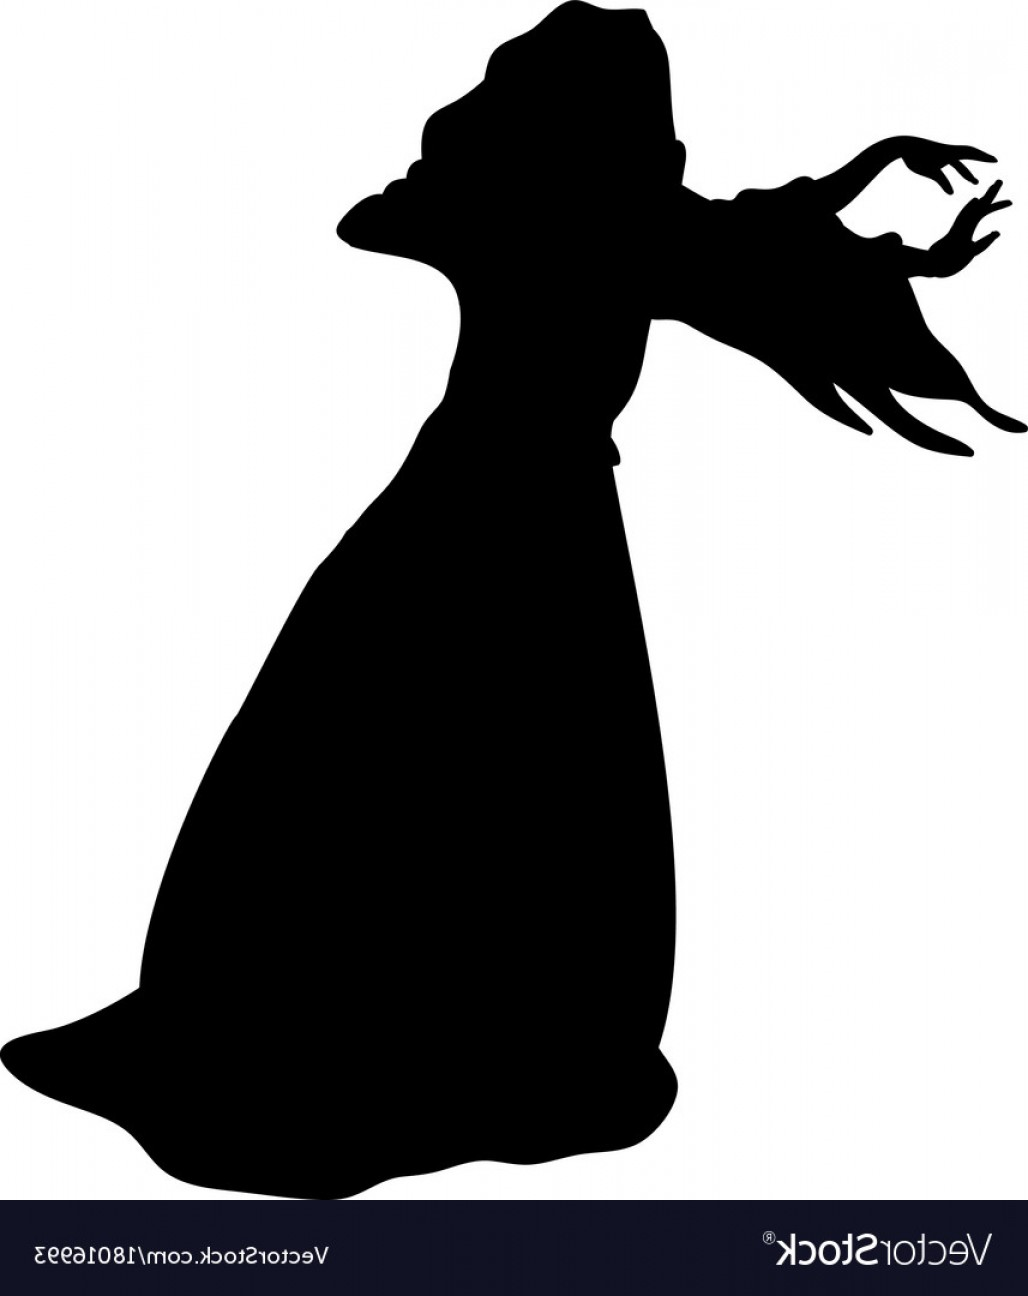 Wizard Silhouette Vector: Witchcraft Witch Magical Silhouette Fantasy Vector